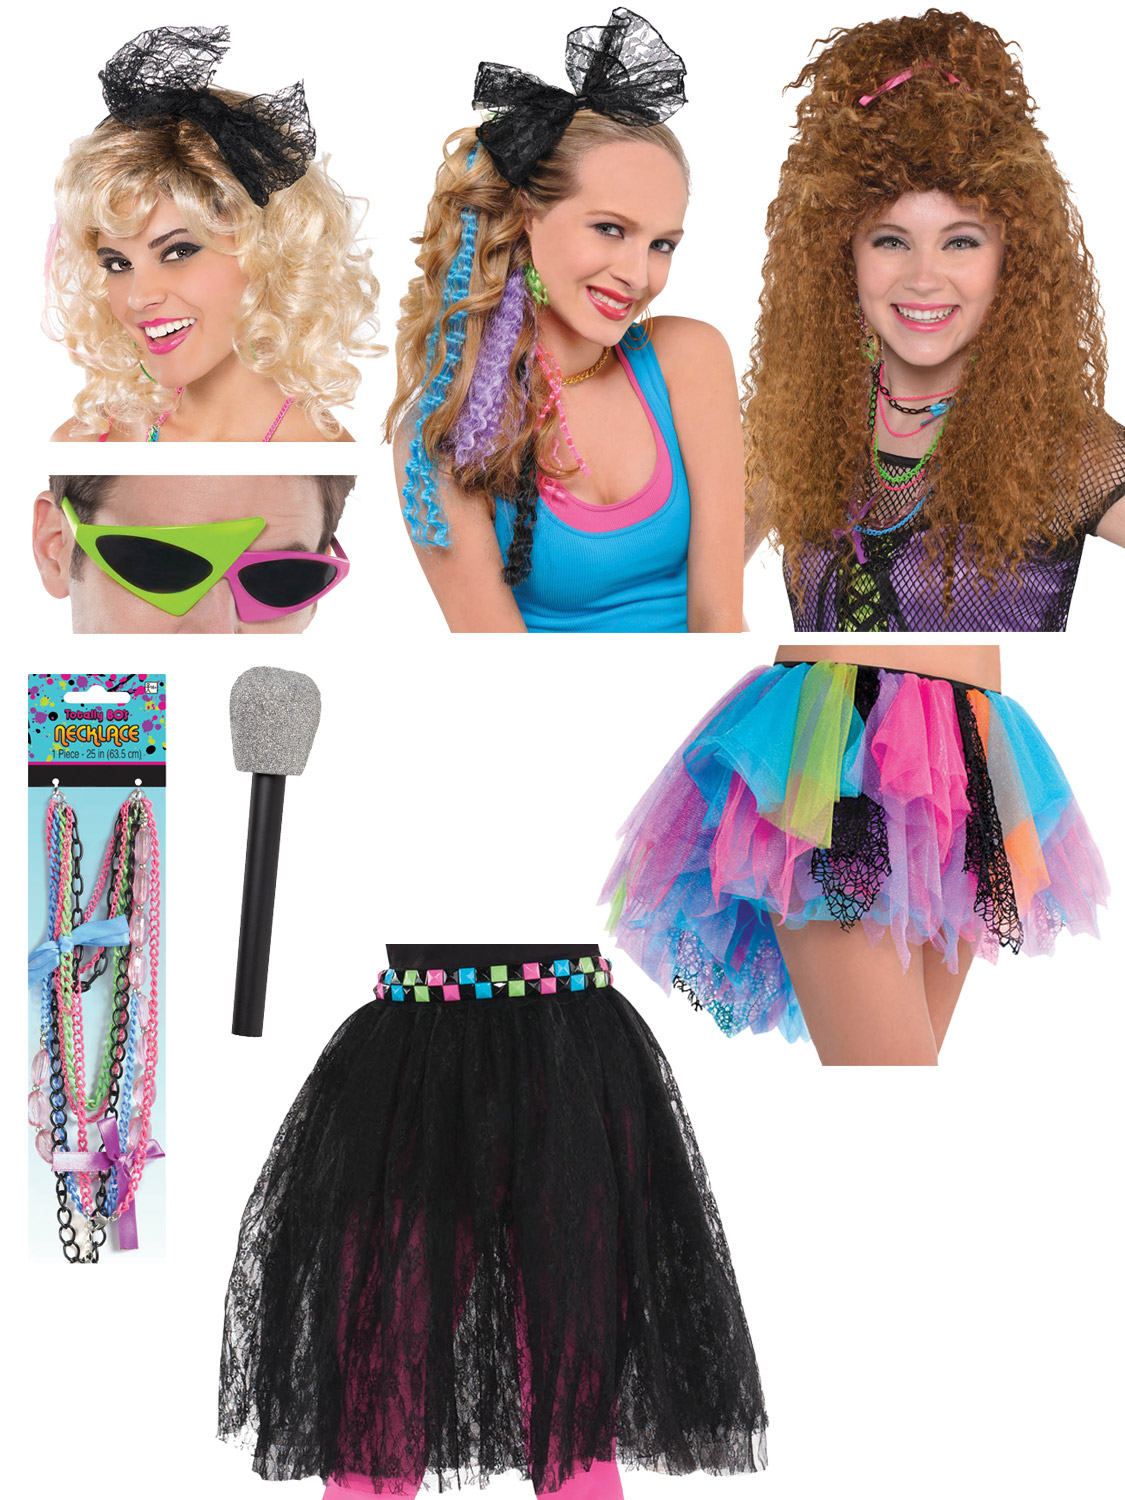 Details about Ladies 9s Costume Accessories Adults Disco Neon Fancy Dress  Pop Star Accessory